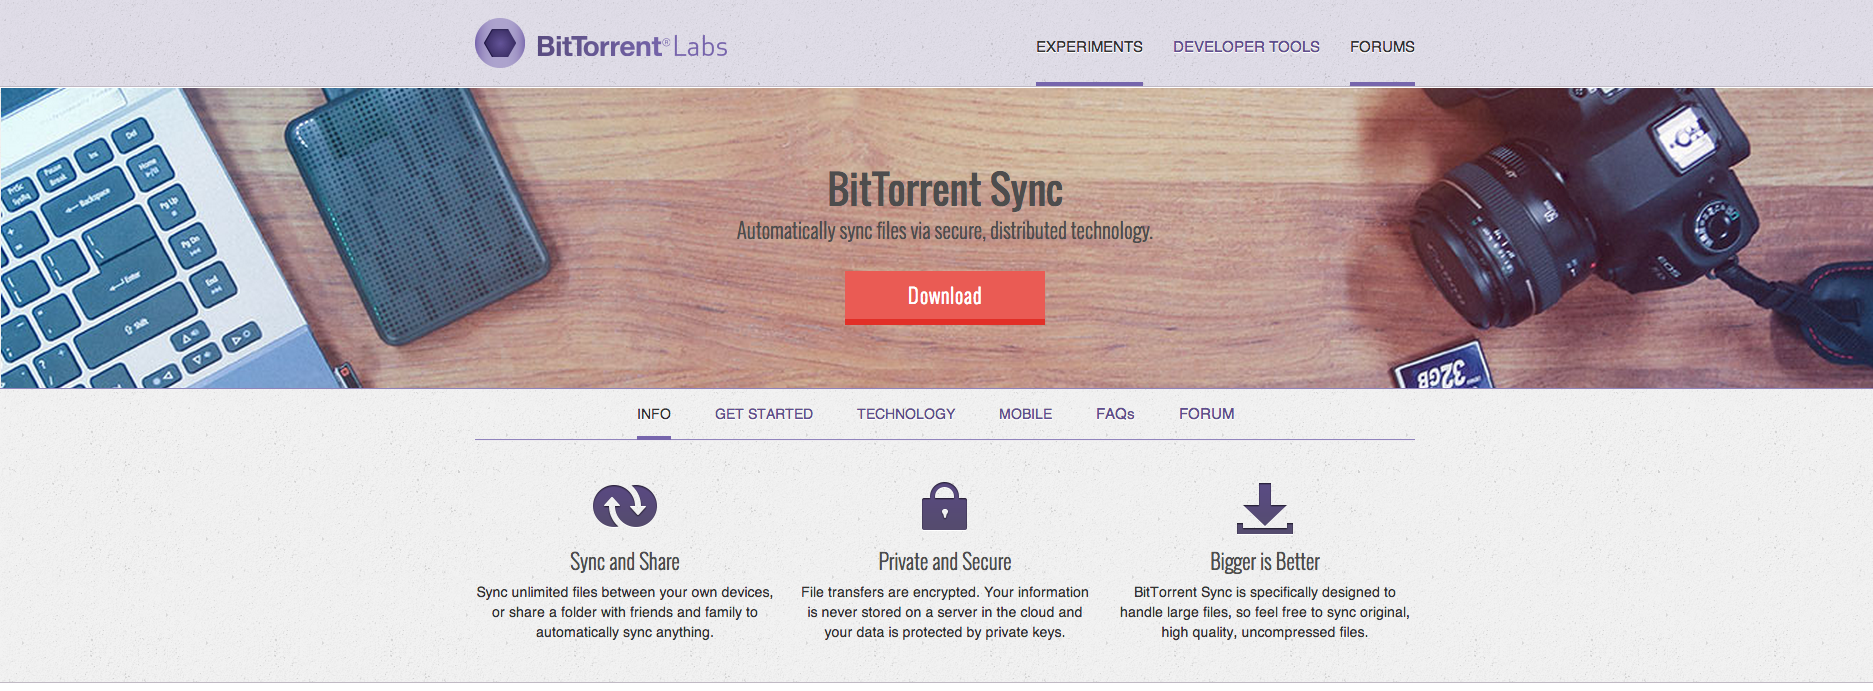 BitTorrent Sync site